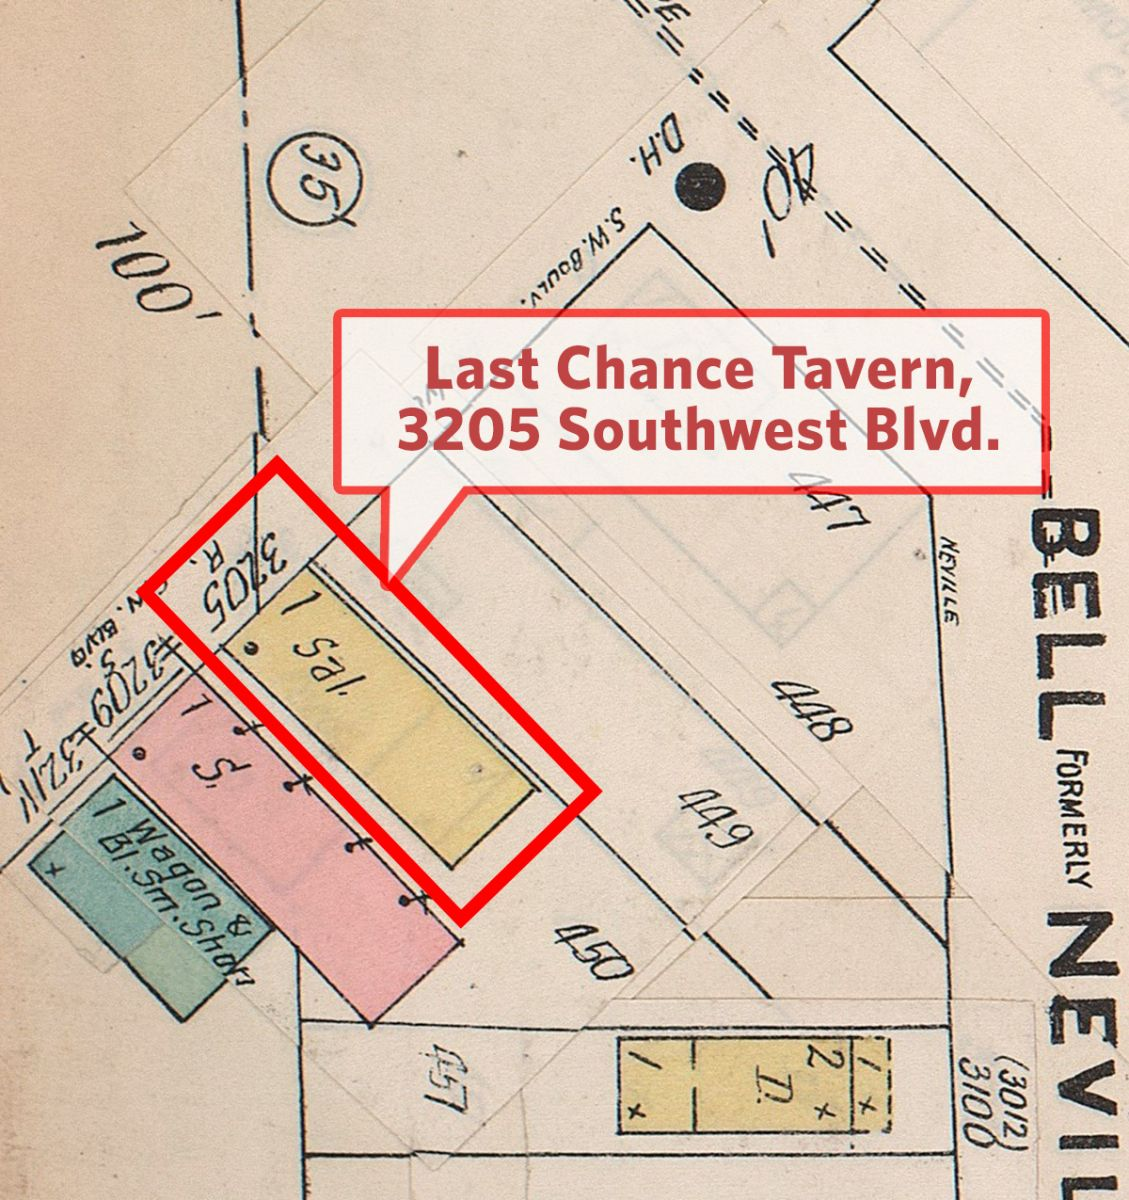 Inset view of 3205 Southwest Blvd., home of the Last Chance Tavern. Missouri Valley Special Collections, Kansas City Public Library.